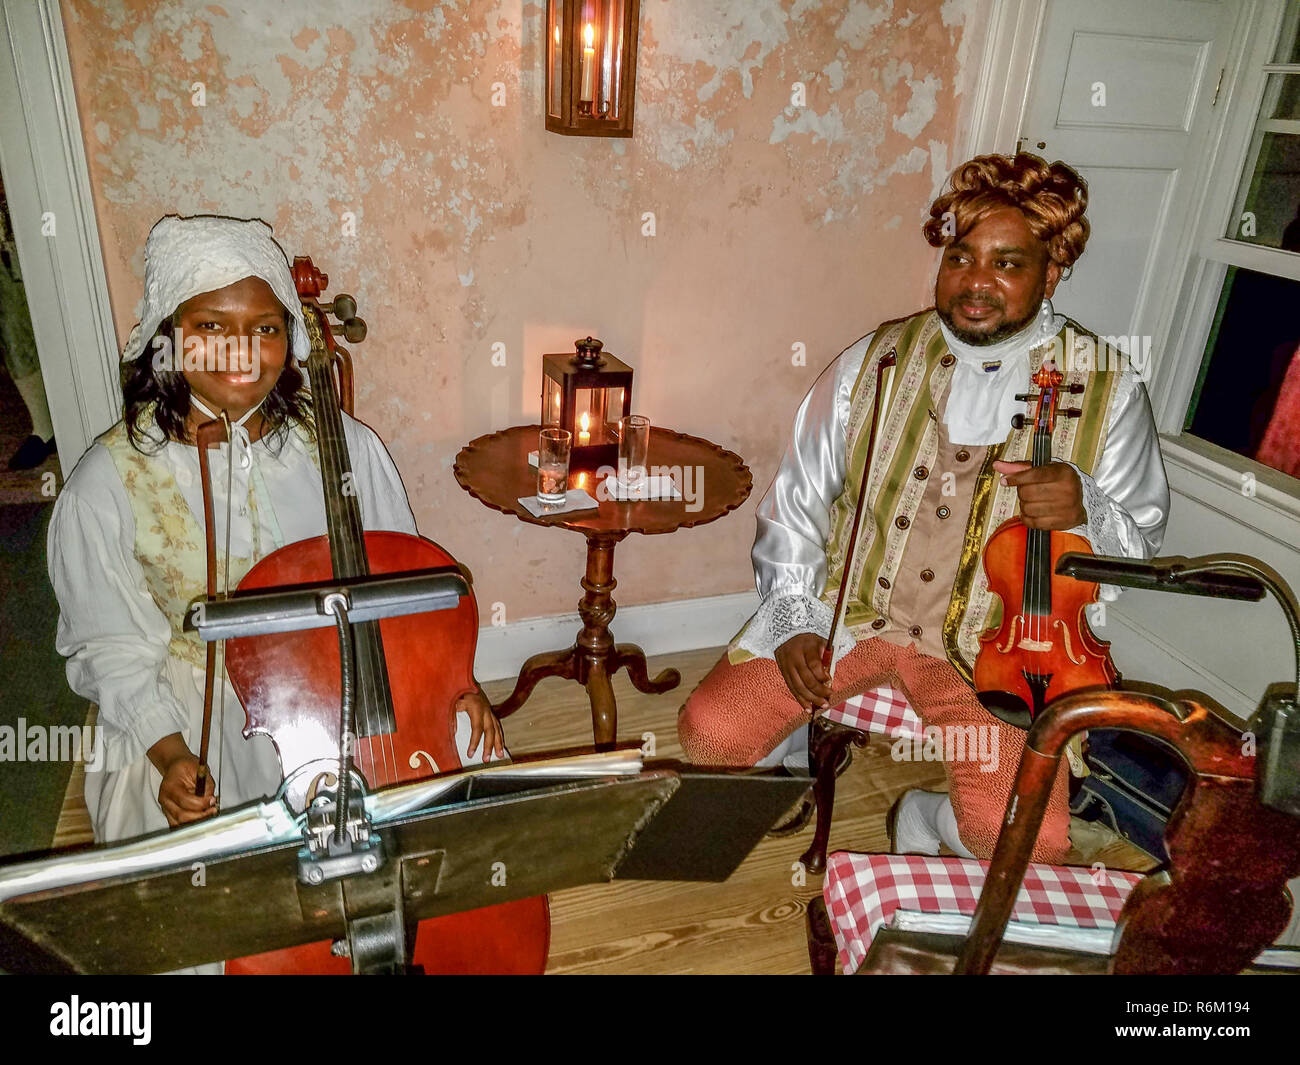 Woman and man playing the part of house slaves during recreation of a dinner with 'George Washington,' attended by island visitors for 'Dinner With George.' - Stock Image